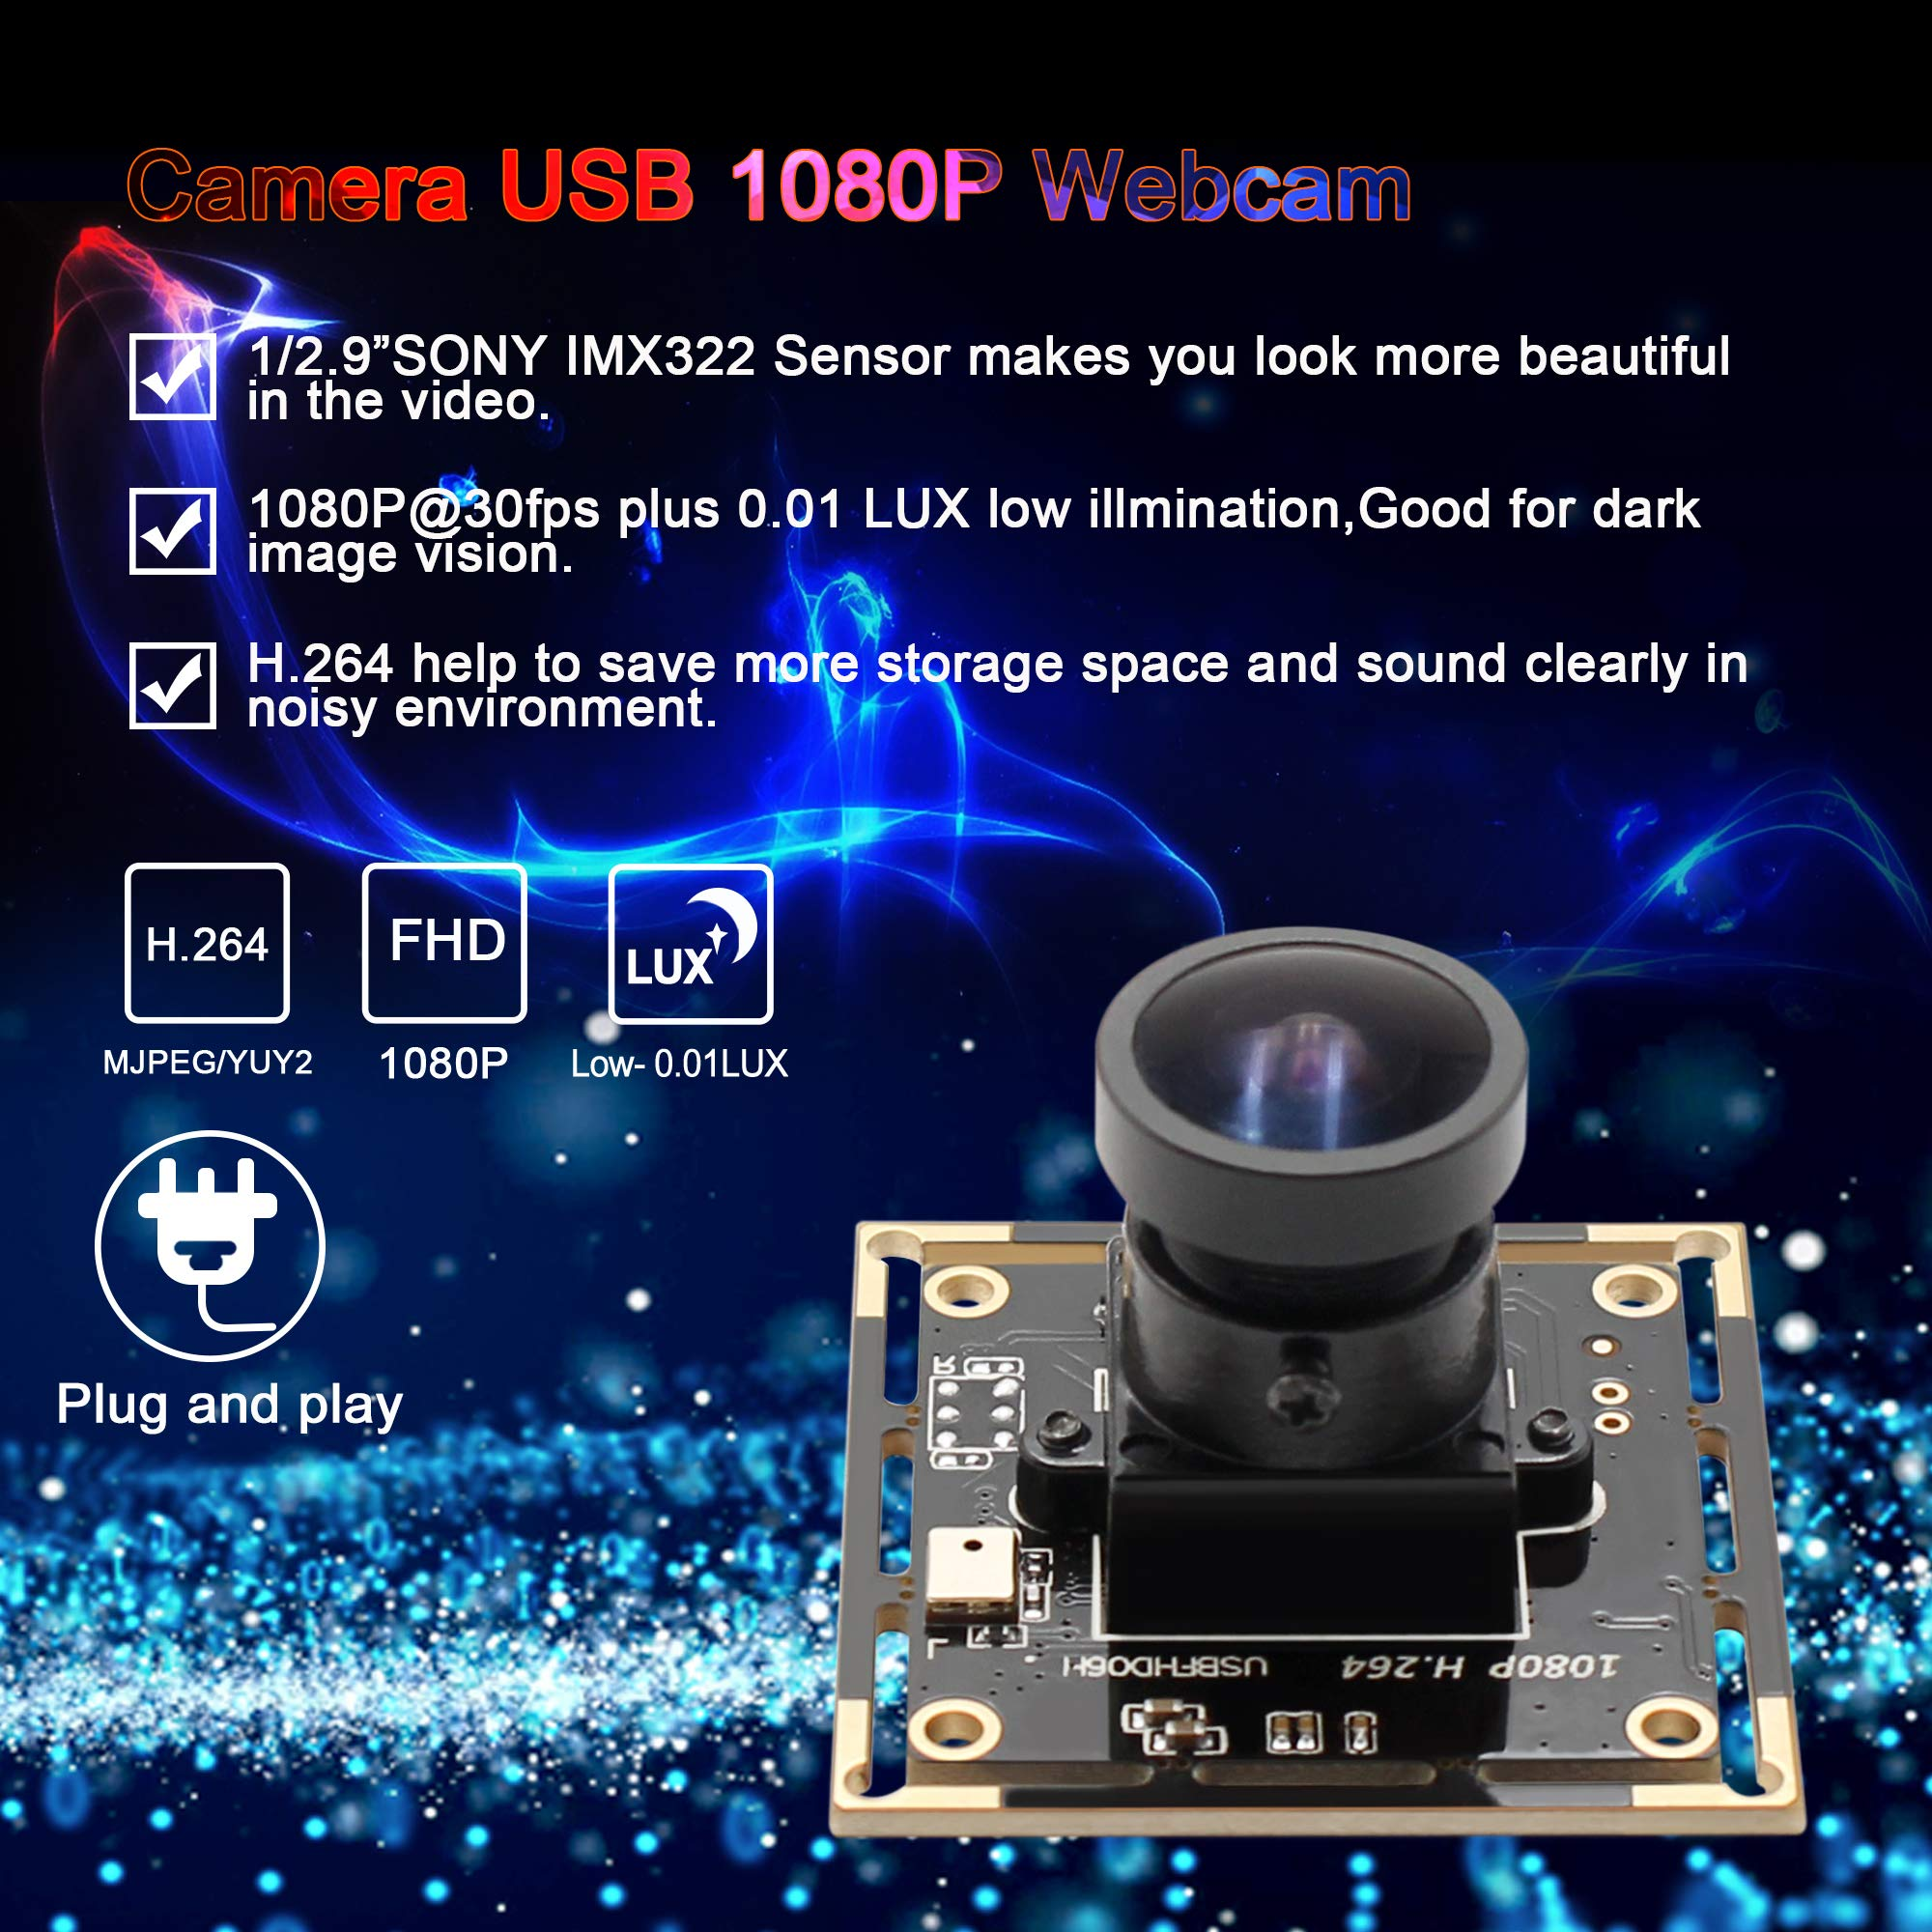 Camera USB 1080P 0.01lux Low Illumination Webcam Sony IMX322 Sensor Webcamera 2MP Fisheye Camera Module USB 170 Degree Fisheye Lens Wide Angle Low Light Video Industrial Camera for Linux/Windows/Mac by Camera USB